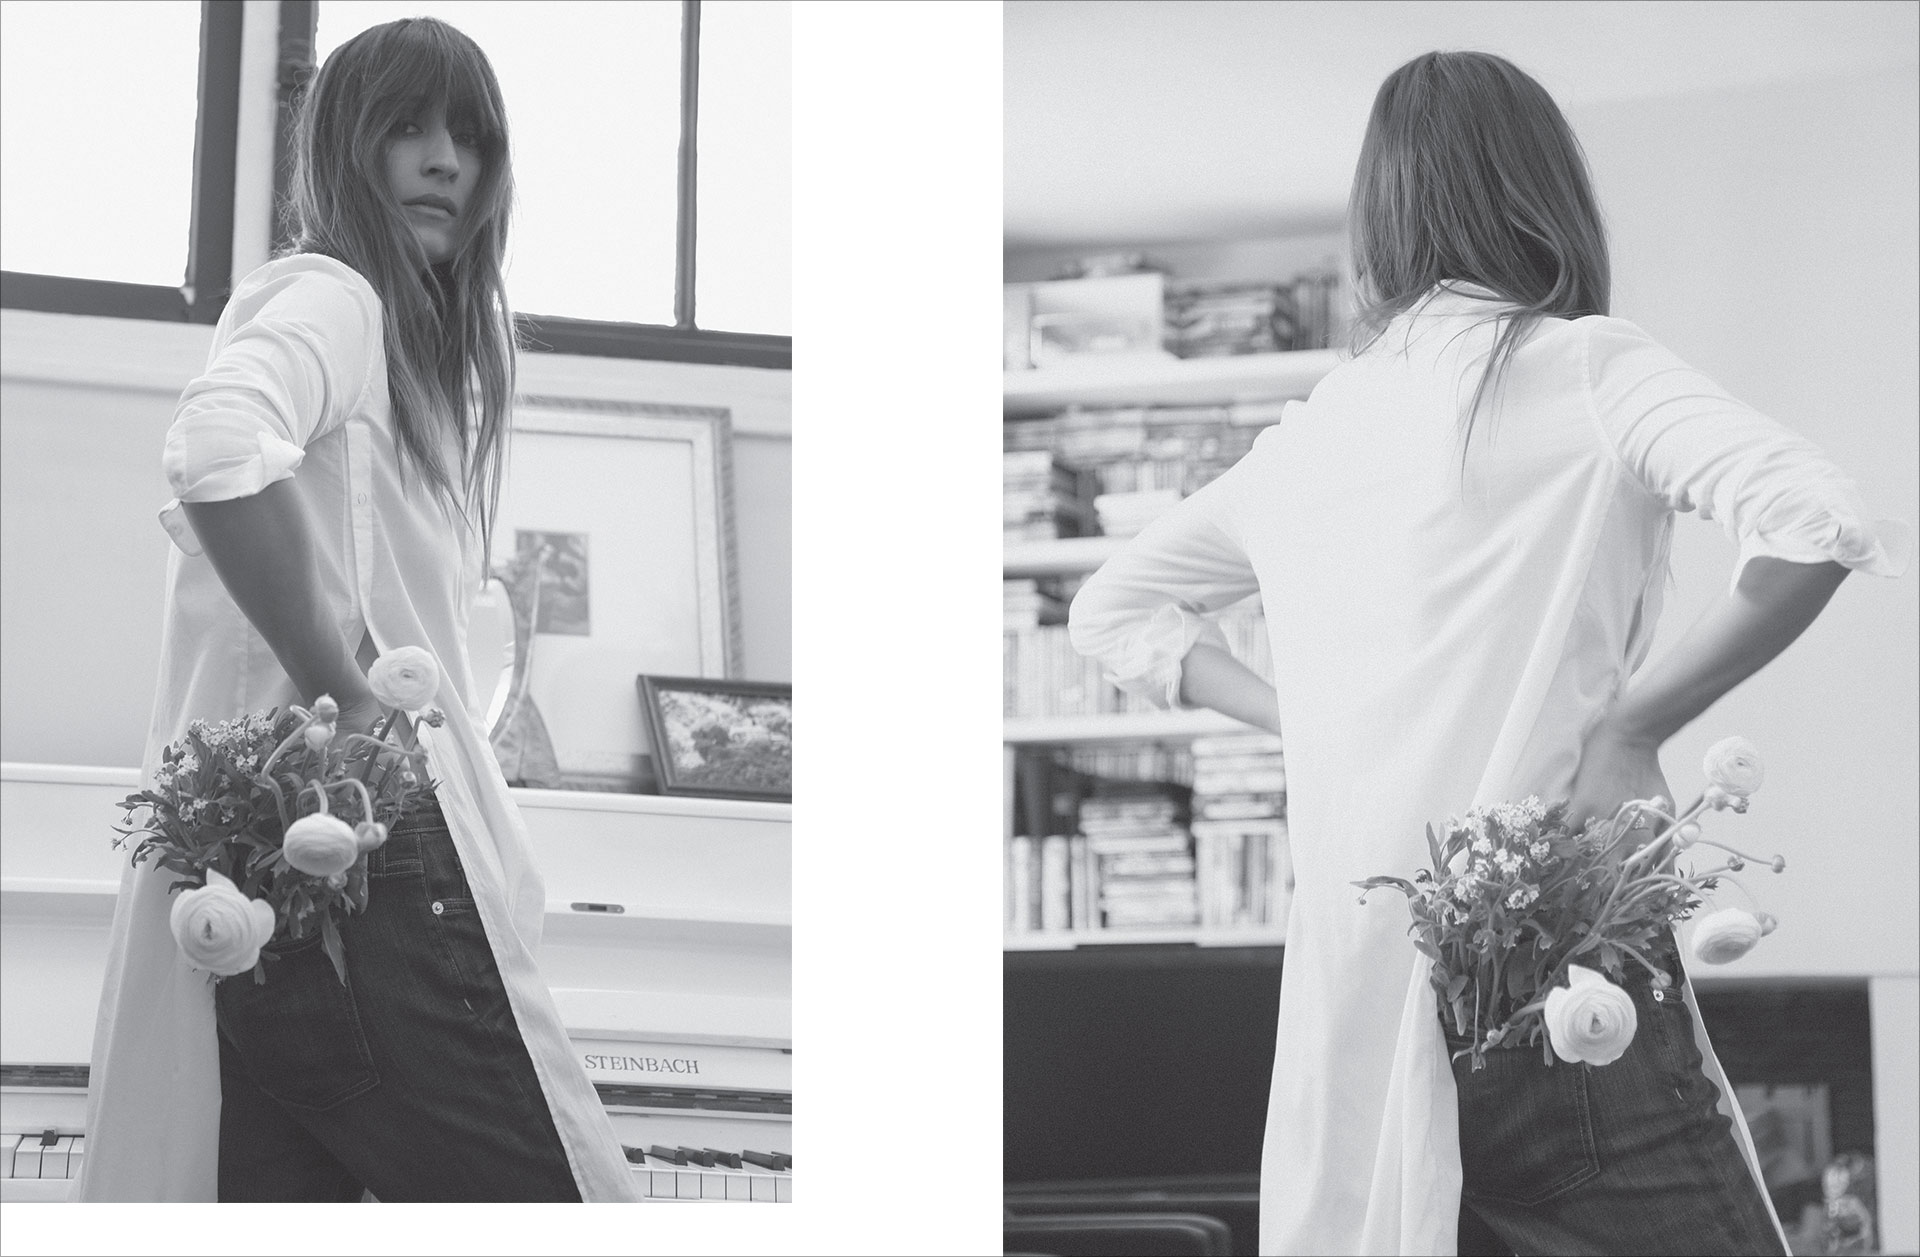 Caroline de Maigret Fall 2015 No.07